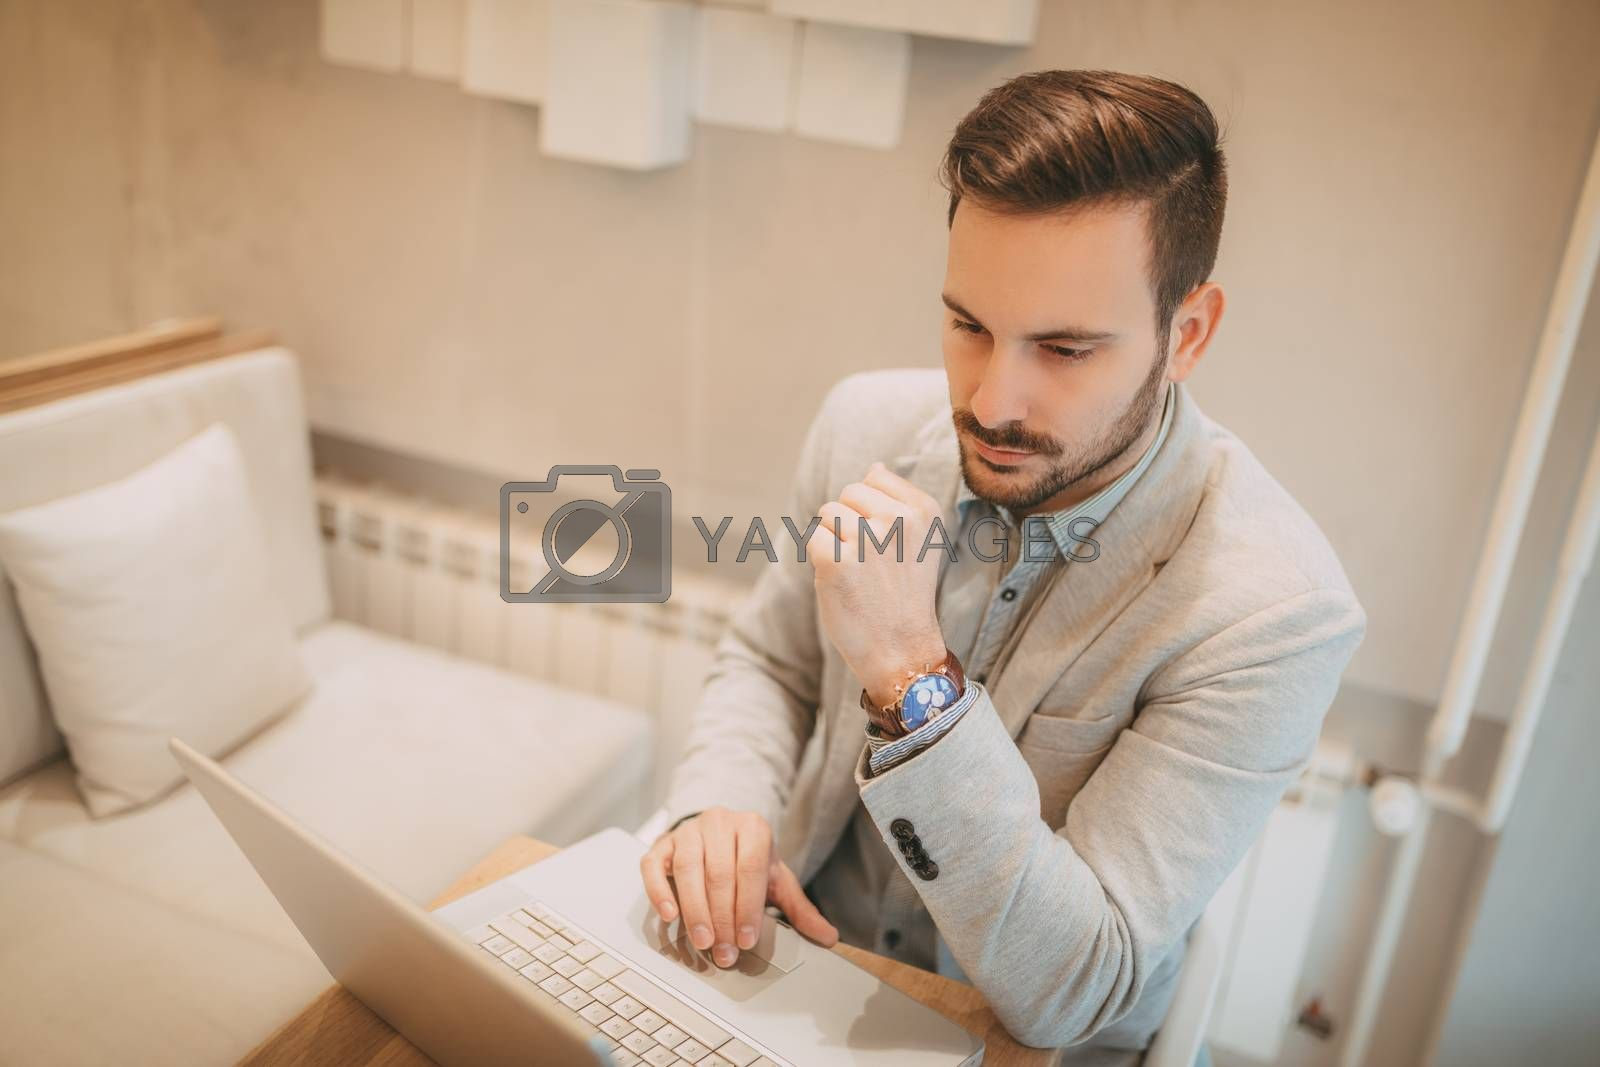 Young pensive businessman on a break in a cafe. He is working at tablet and using smart phone.